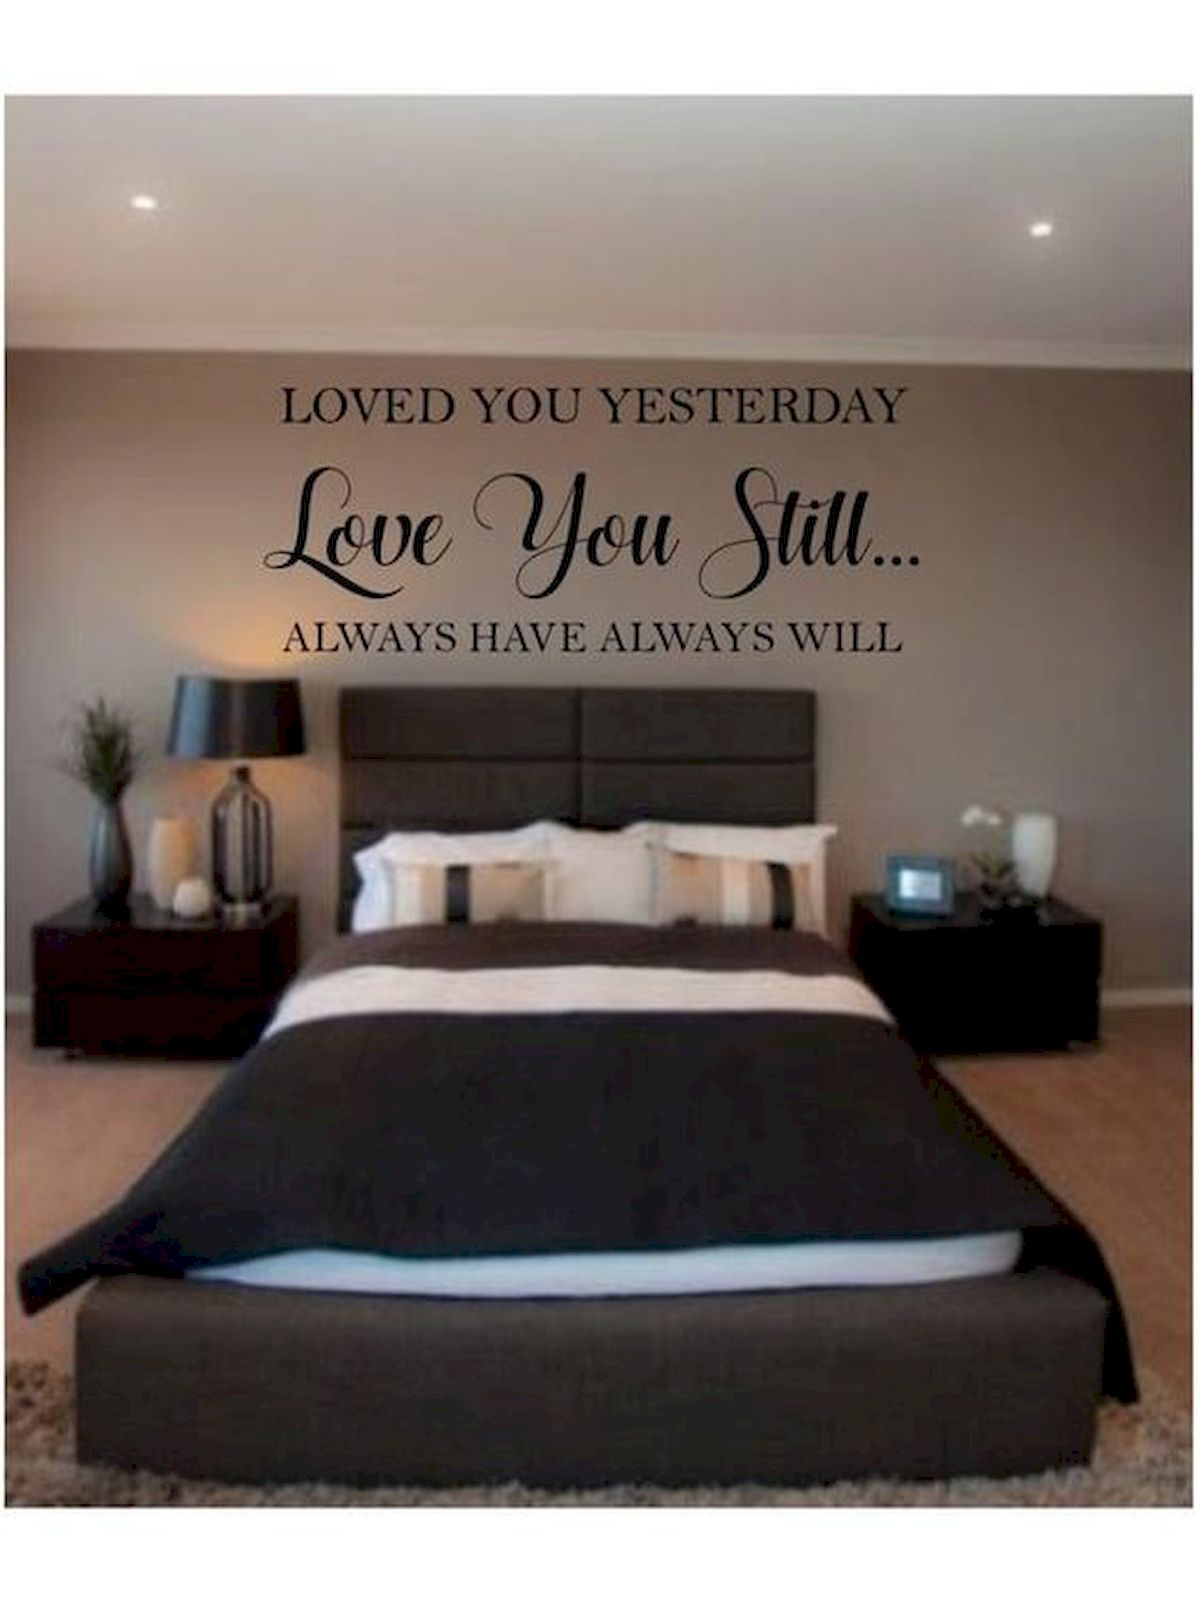 24 Romantic Bedroom Decor For Couple (24) - House8024.com